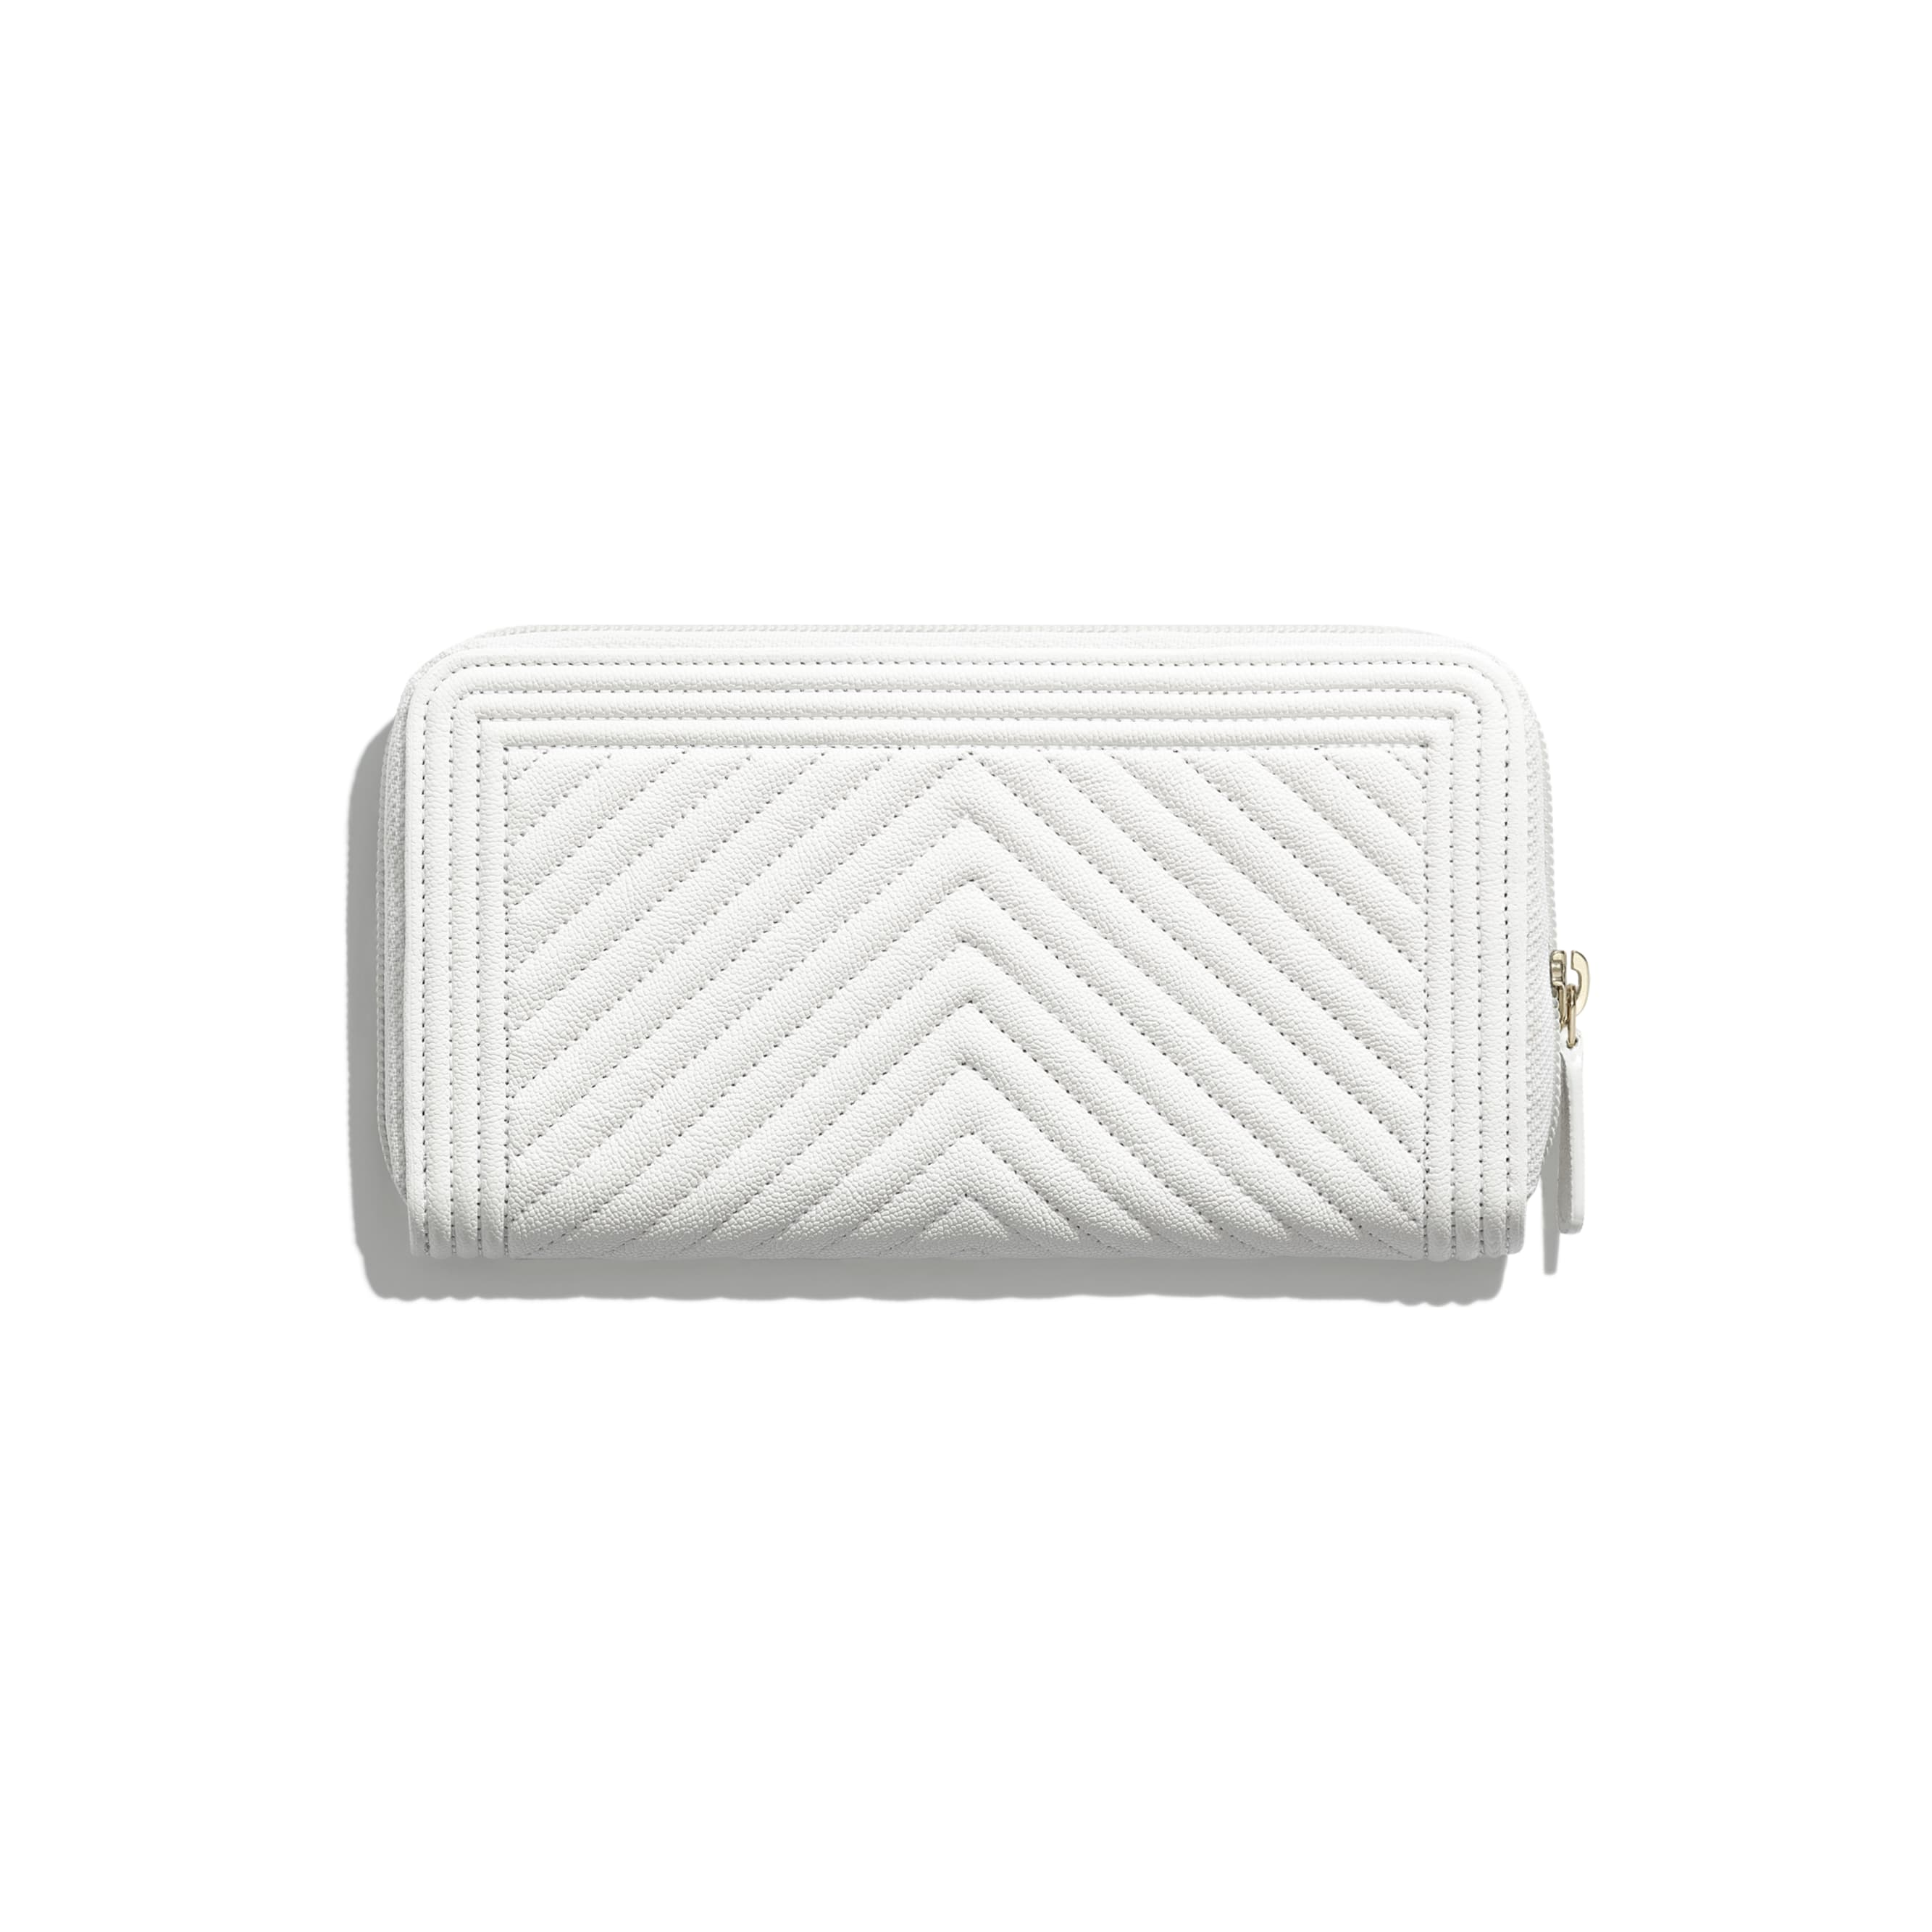 BOY CHANEL Long Zipped Wallet - White - Grained Calfskin & Gold-Tone Metal - CHANEL - Alternative view - see standard sized version